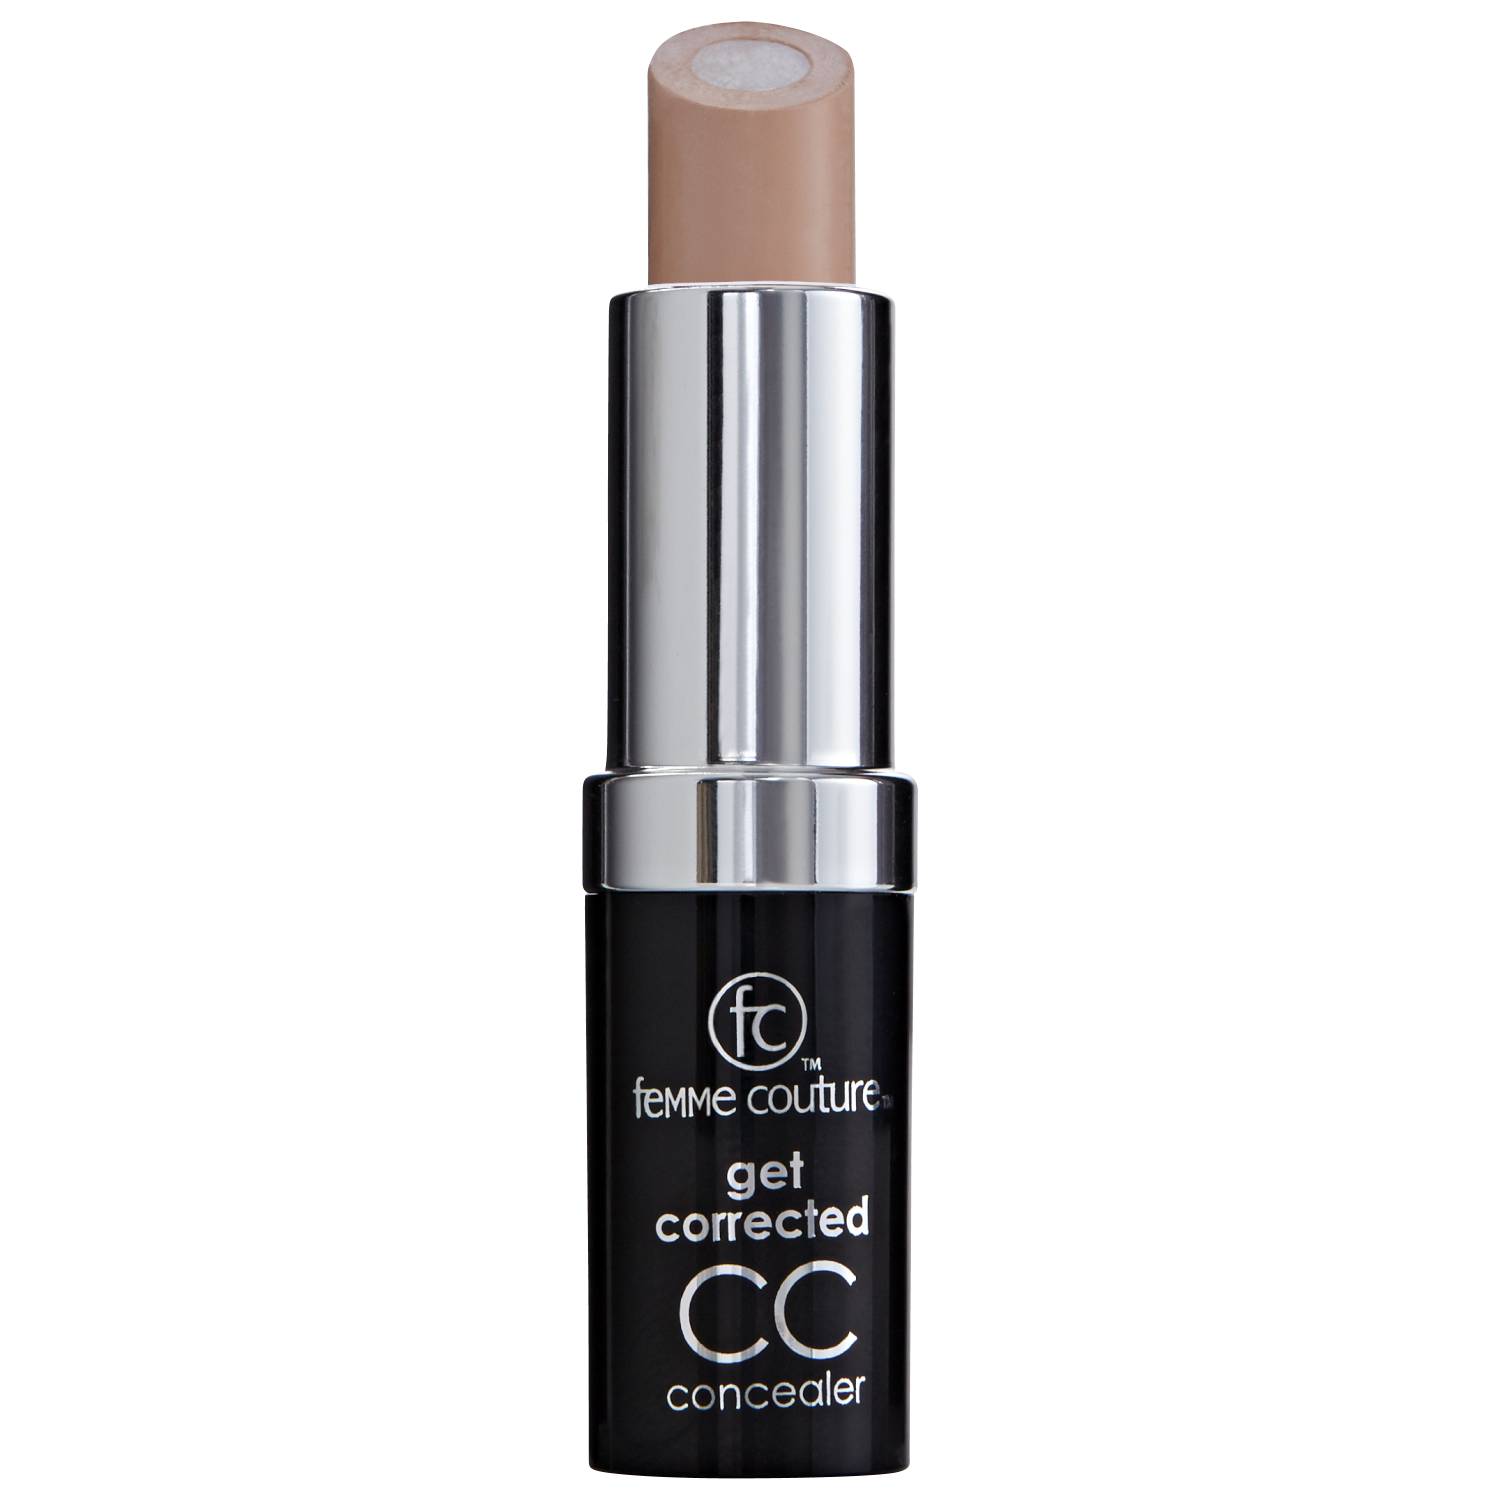 Femme Couture Get Corrected CC Core Concealer Light